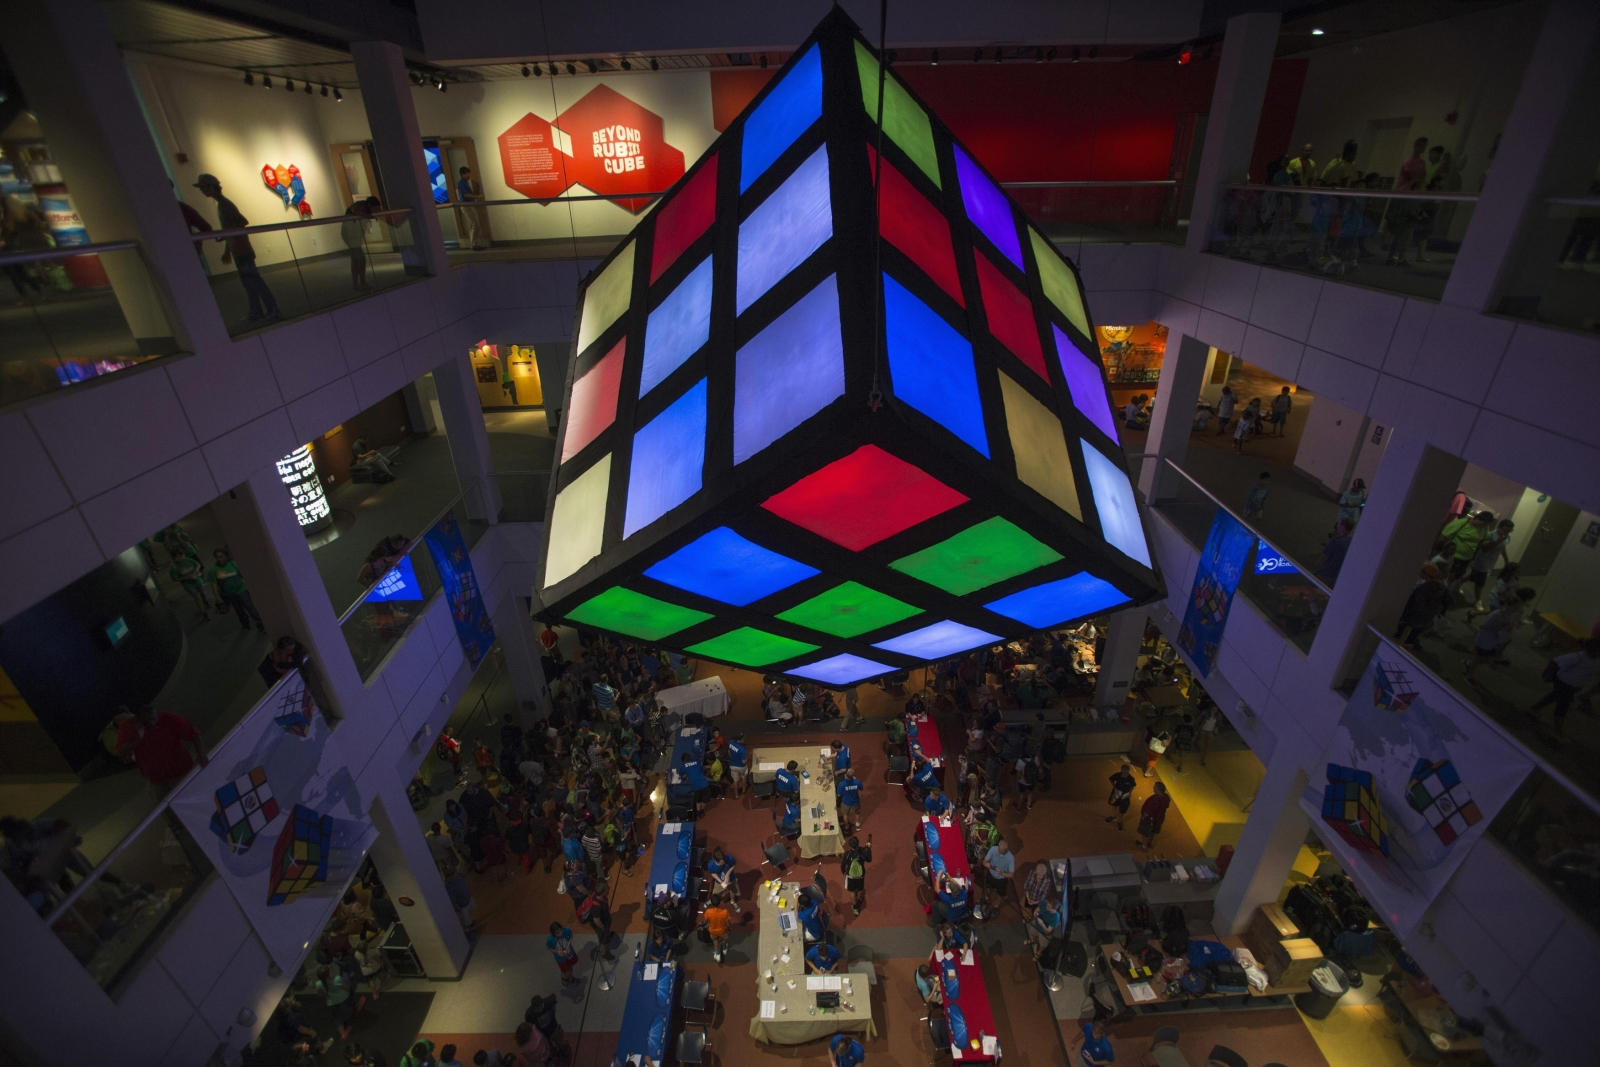 Rubiks Cube looks down over the crowd of participants